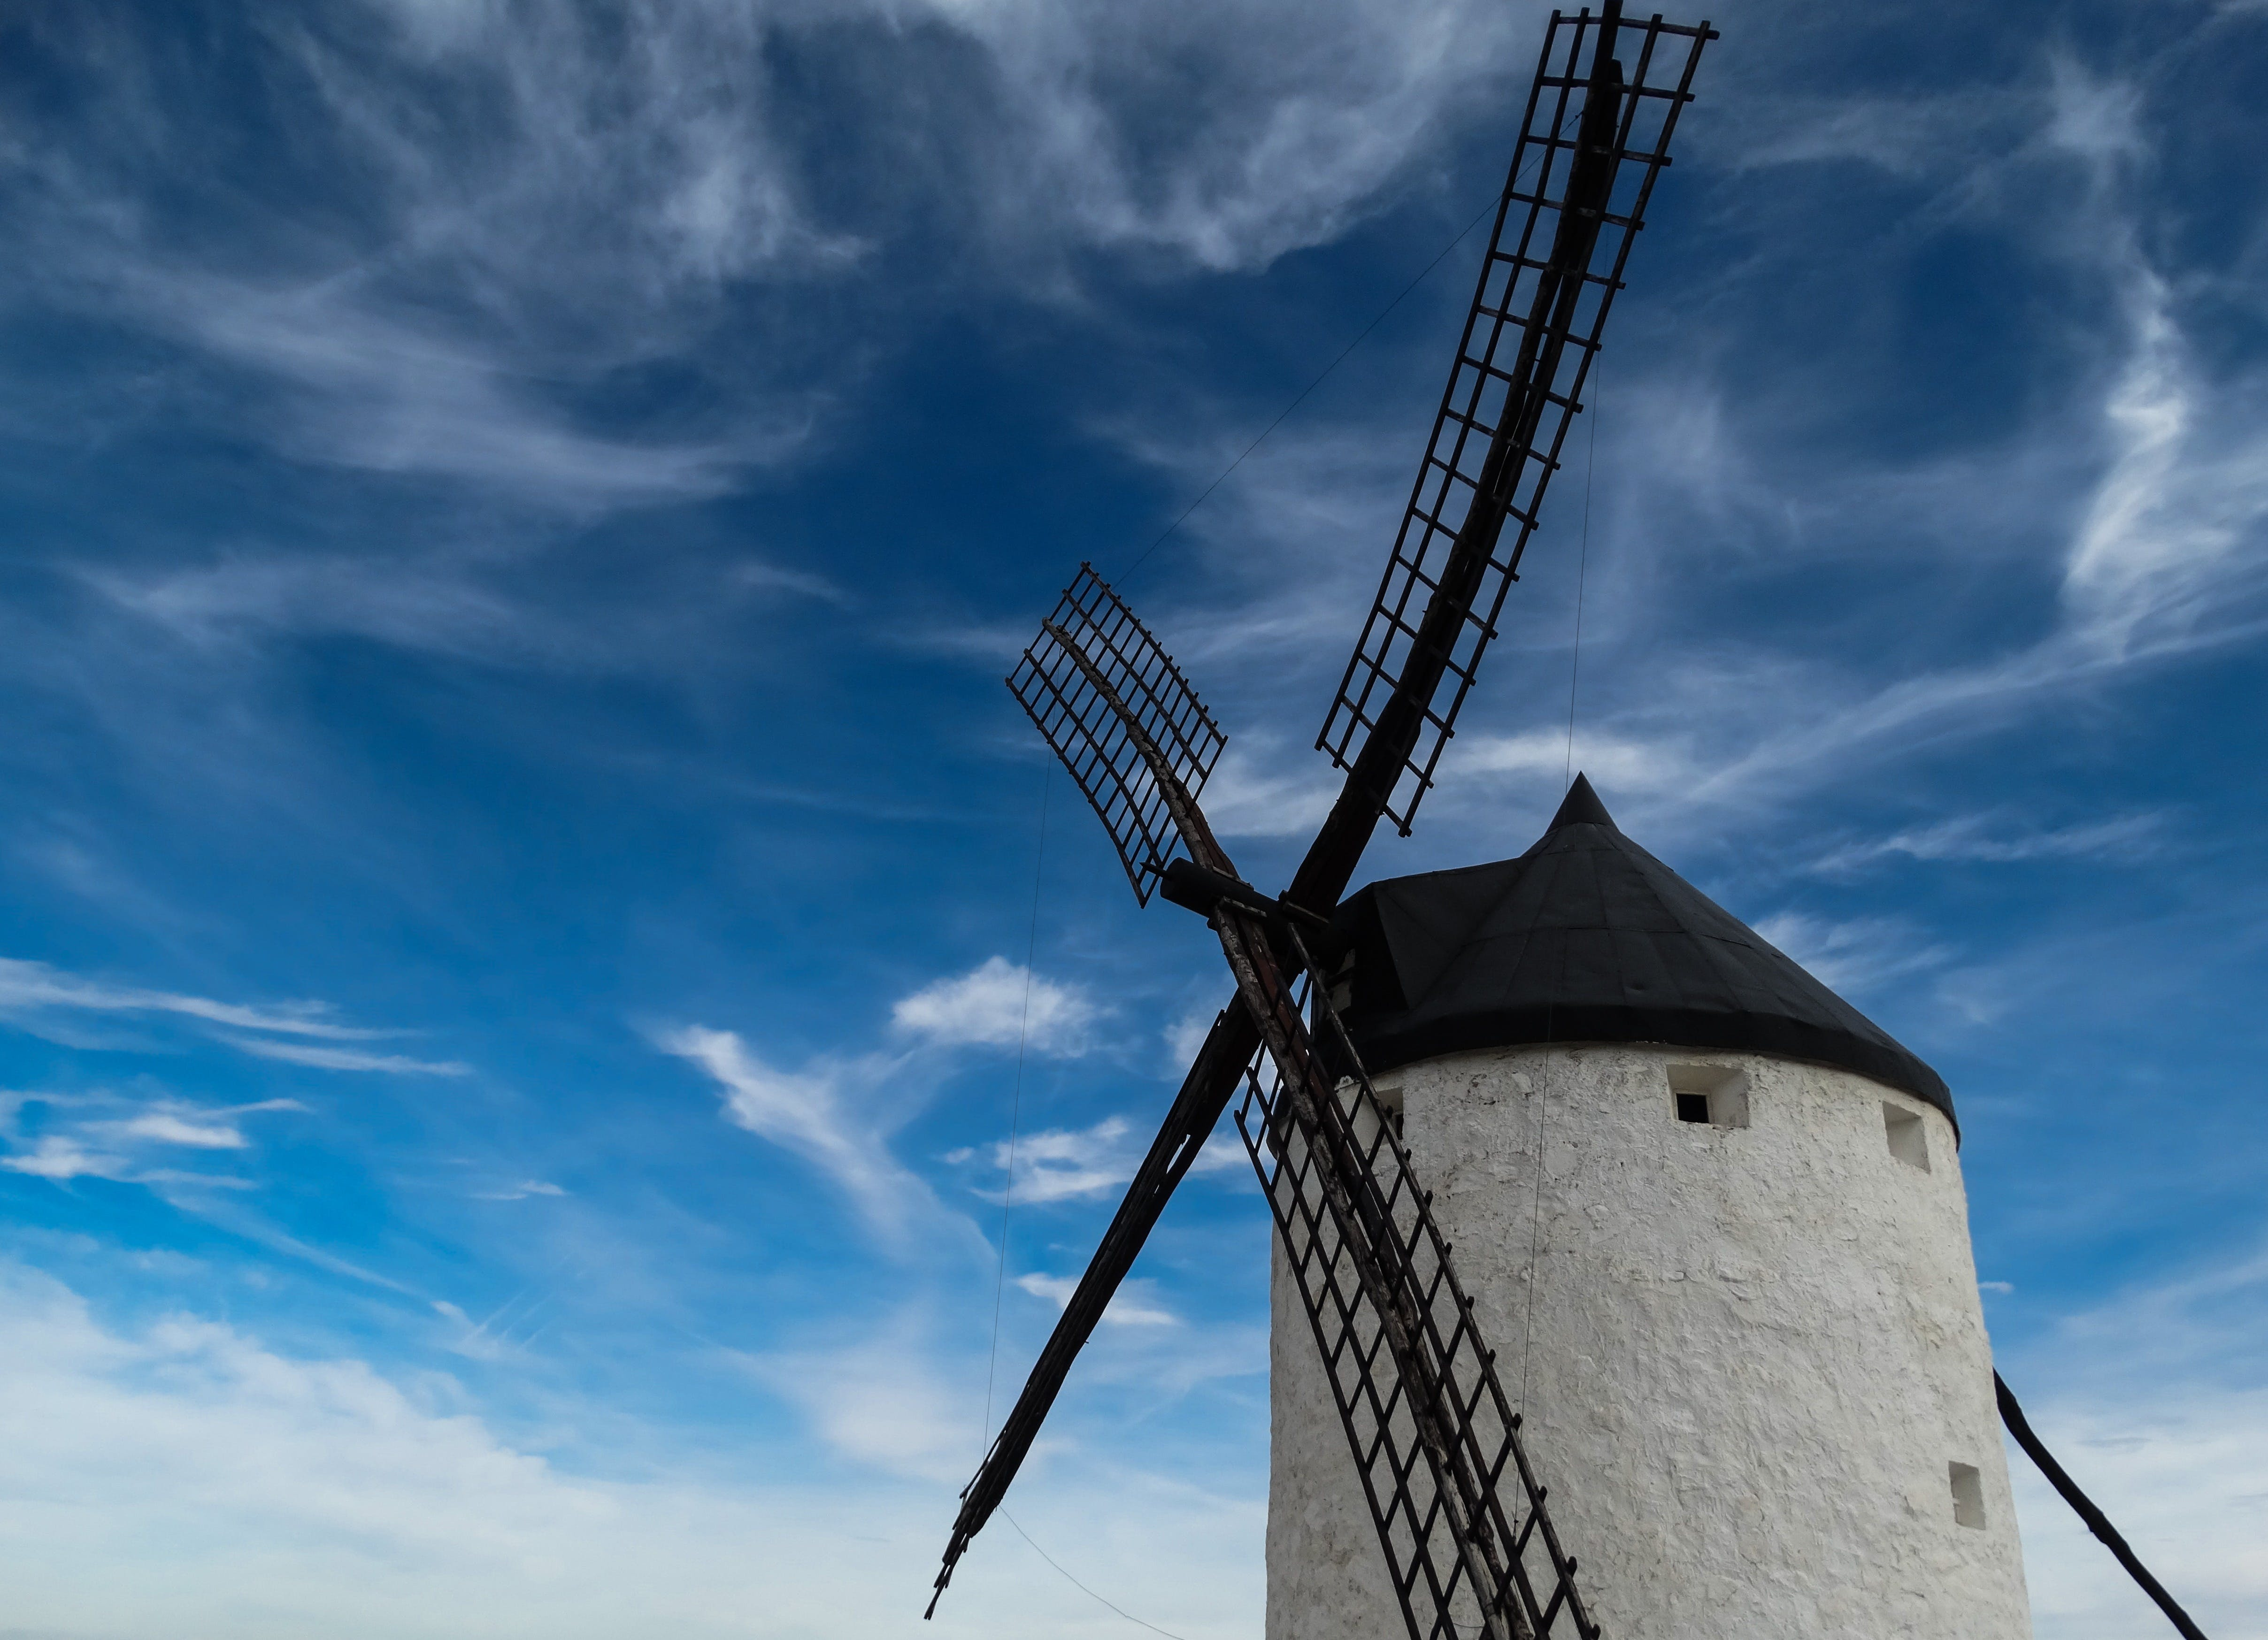 Black and White Windmill Tower and Clear Blue Sky